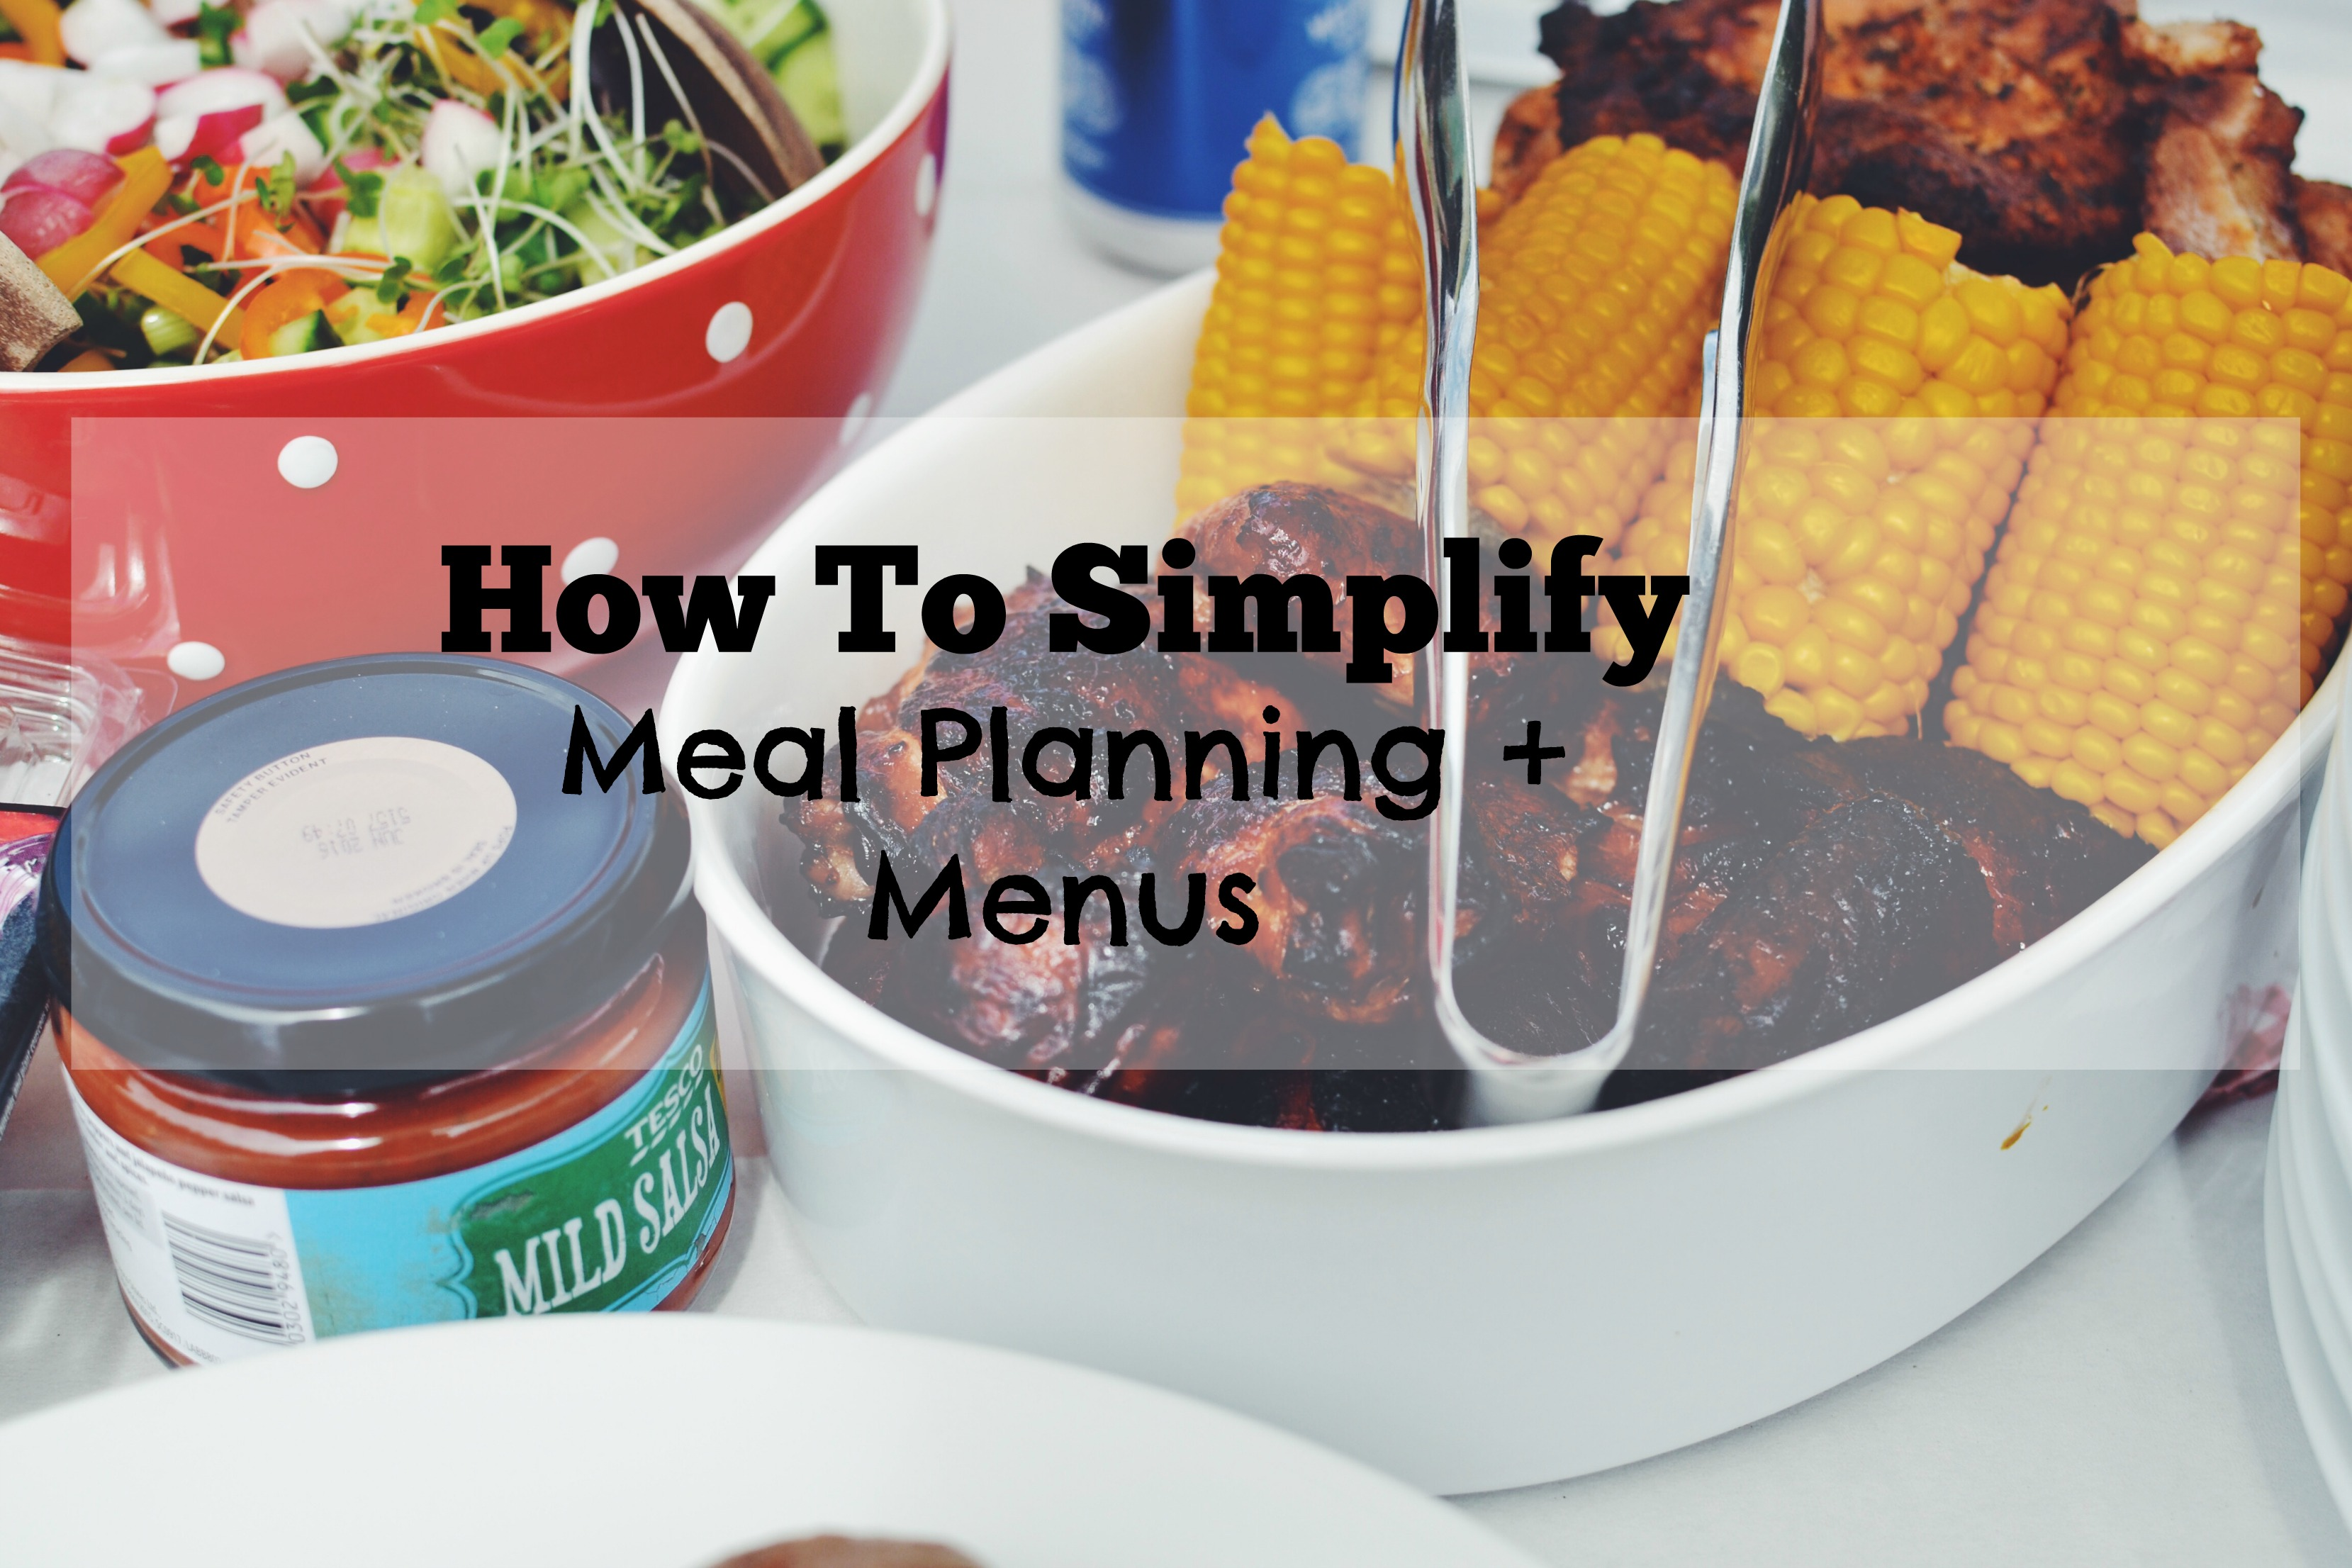 How To Simplify Meal Planning + Menus